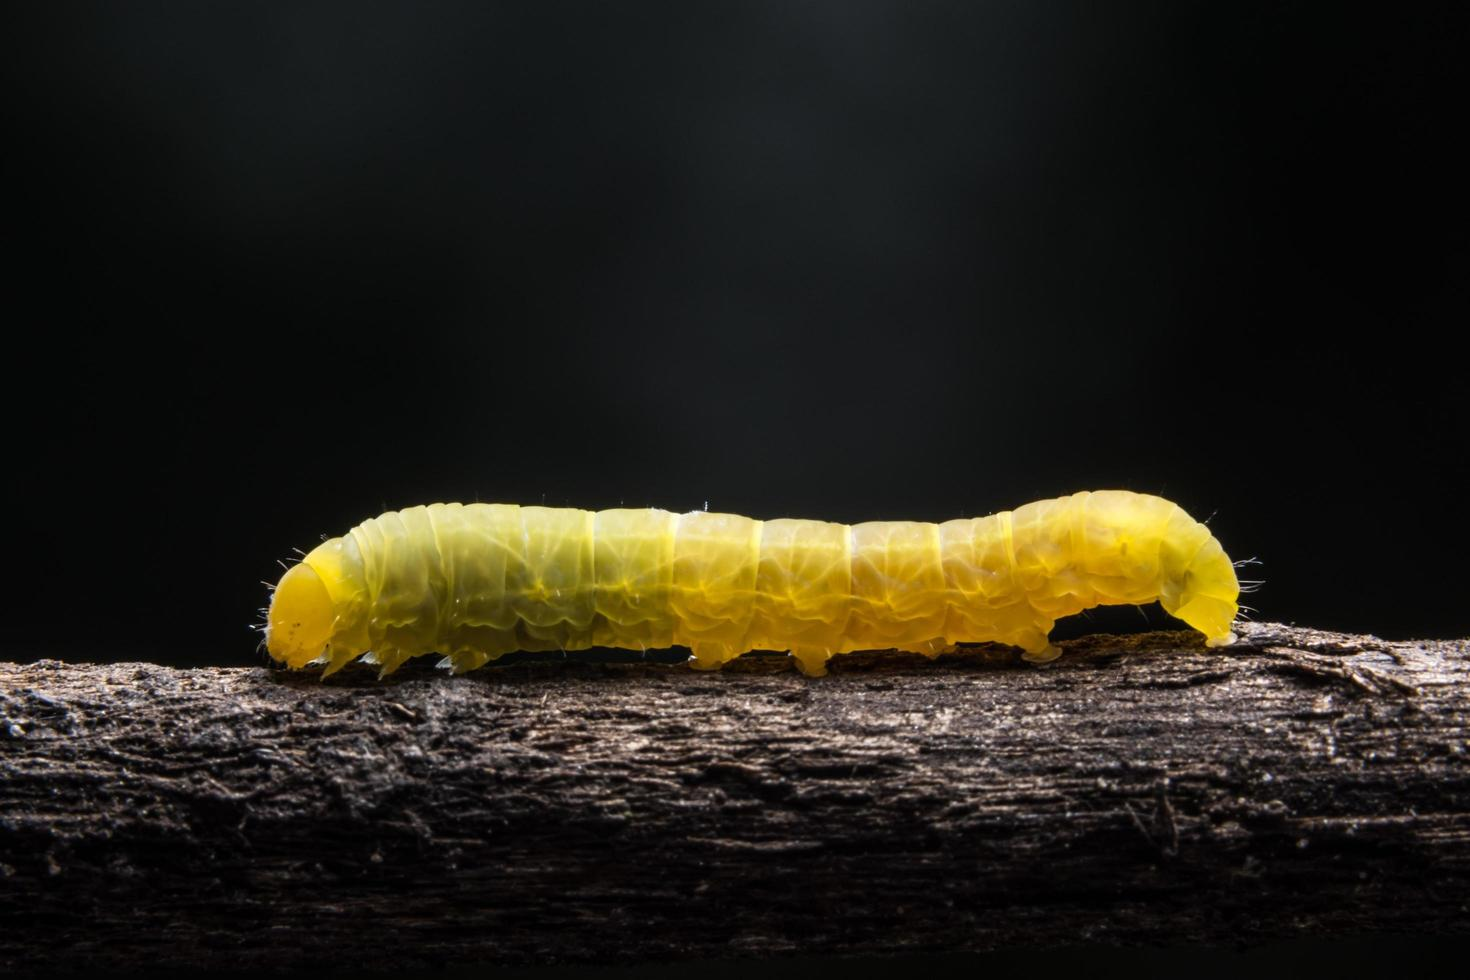 Worm on a branch photo